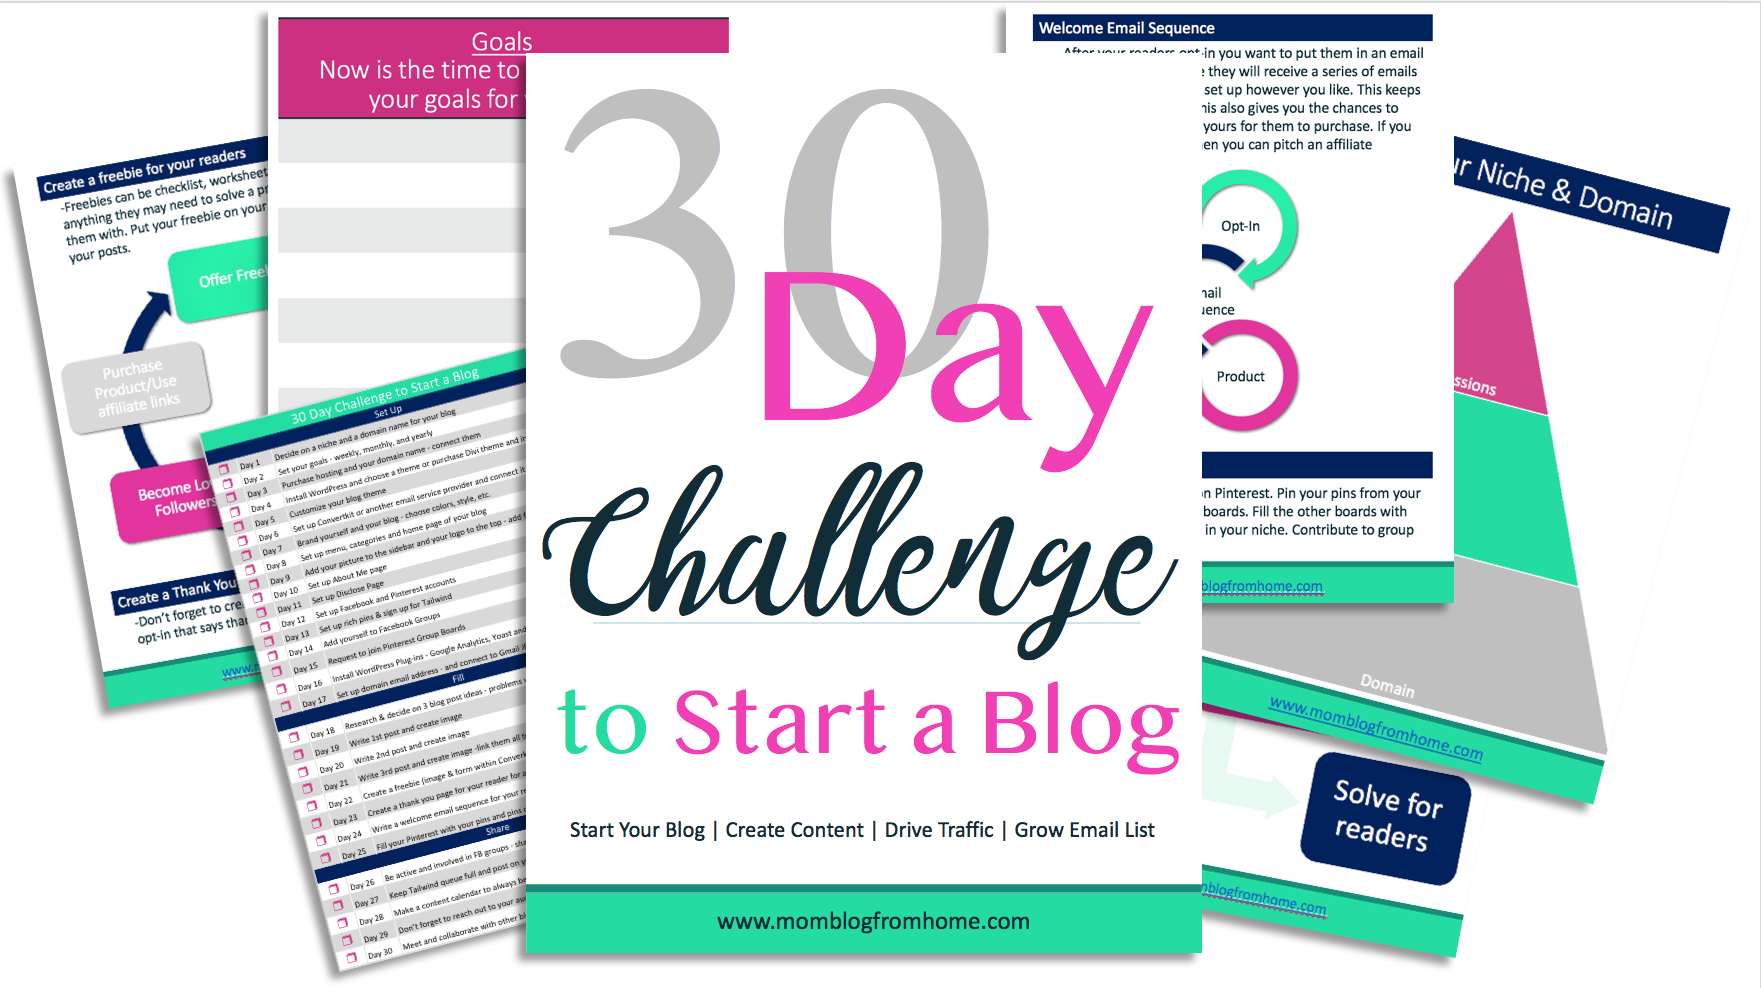 30-Day challenge - mom blog from home